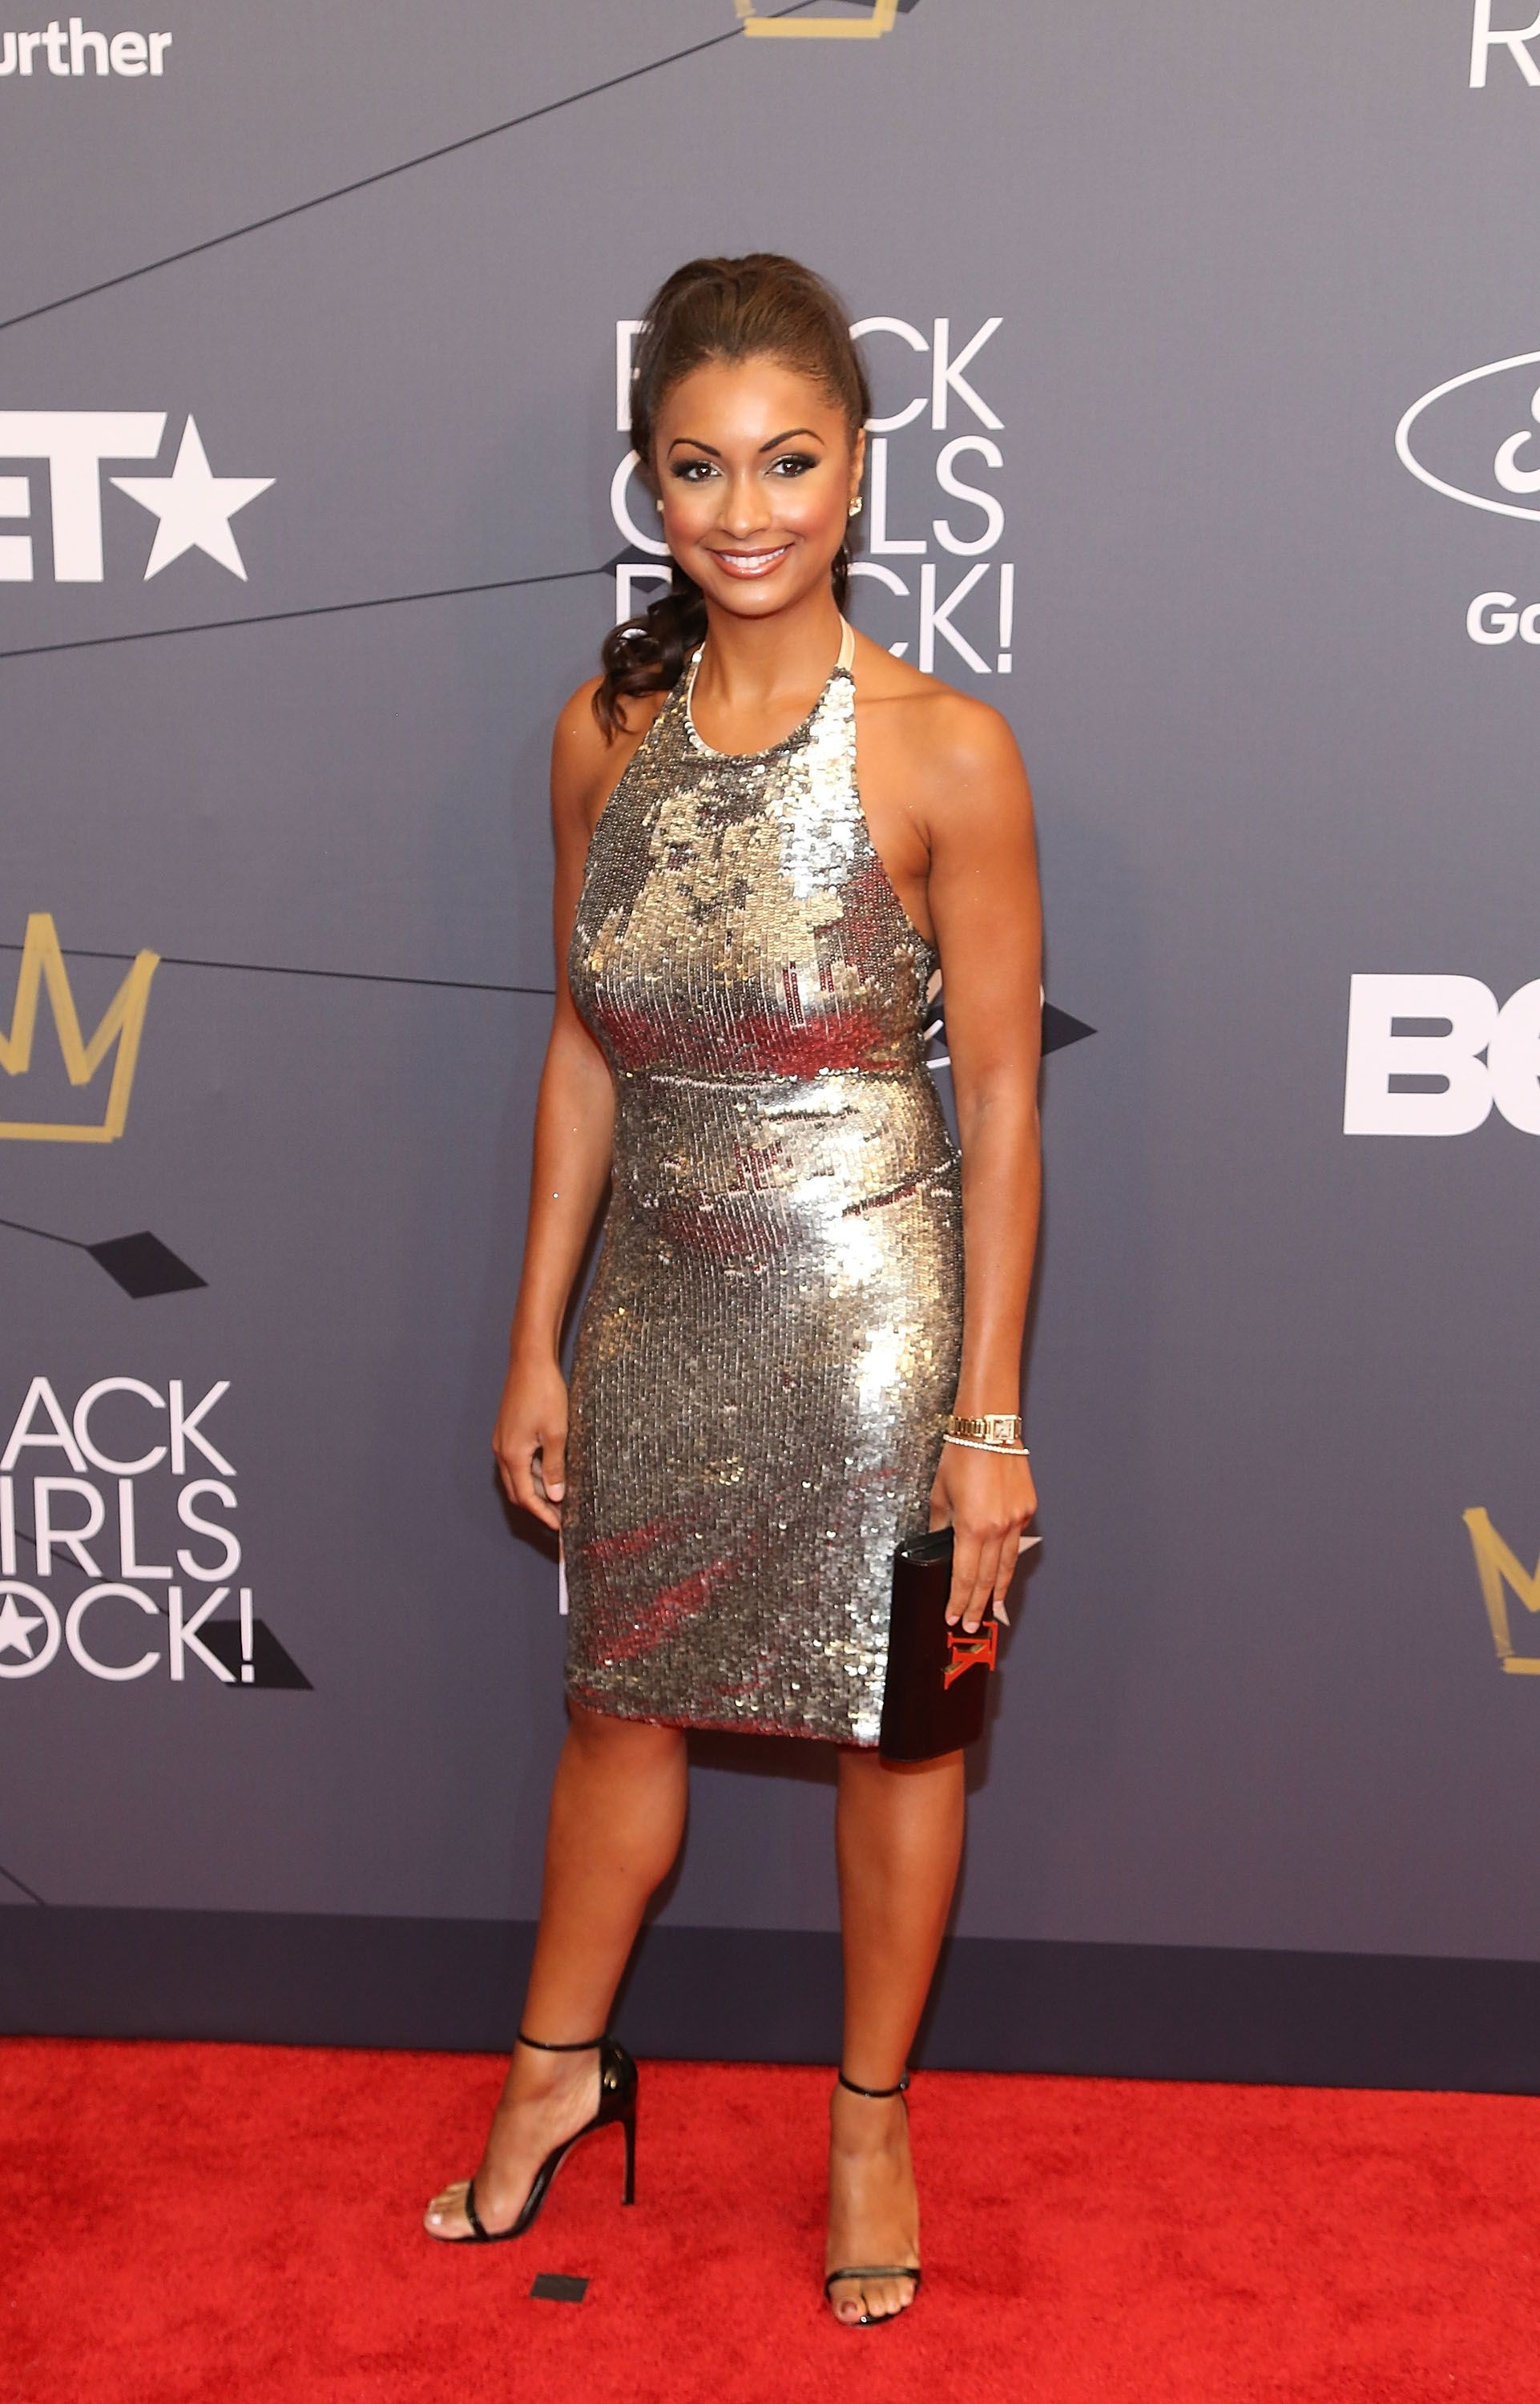 """Eboni K. Williams at the """"Black Girls Rock!"""" 2018 red carpet in Newark, New Jersey 